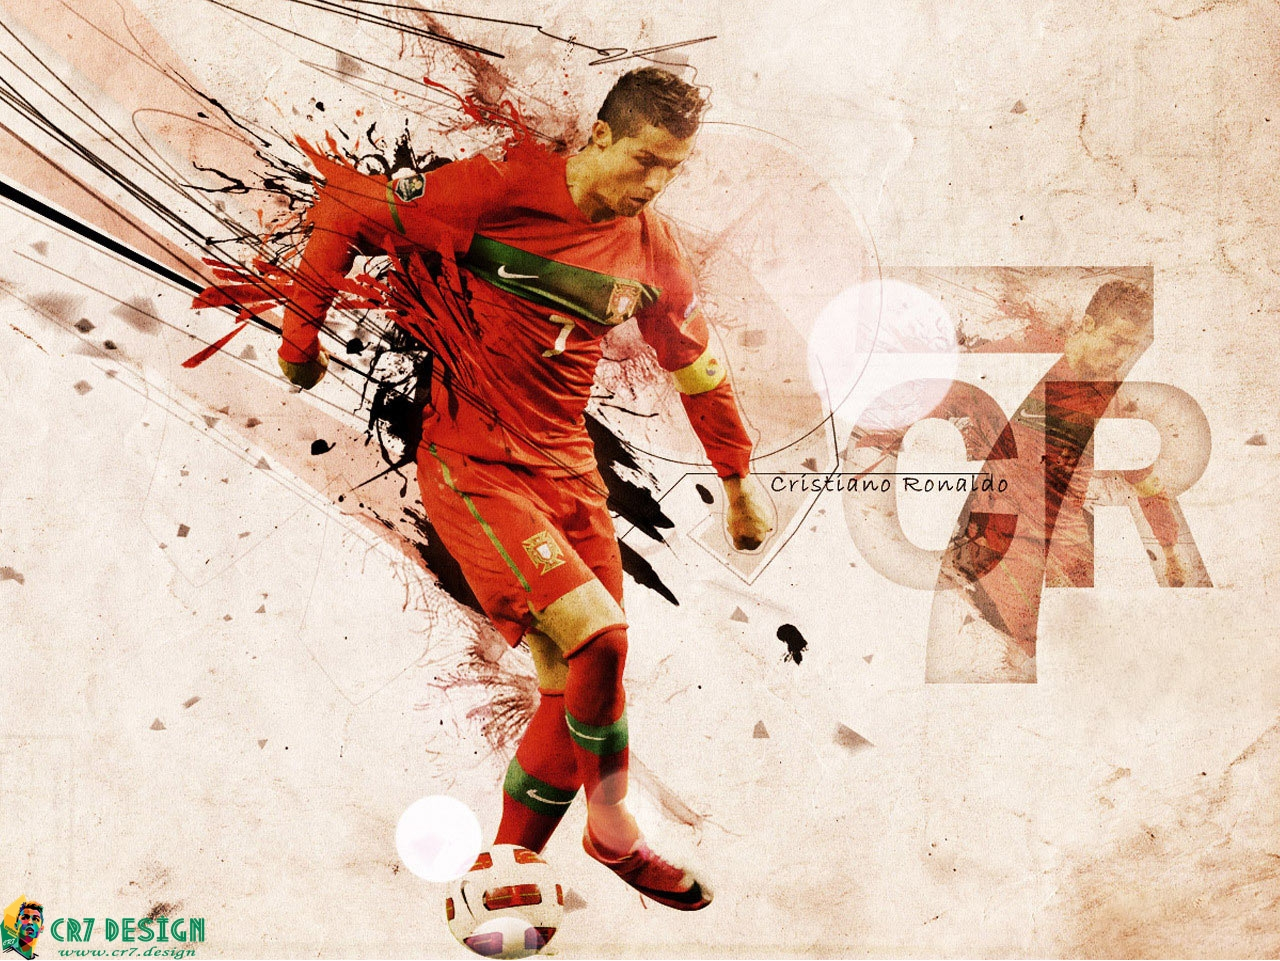 ciristiano-ronaldo-wallpaper-design-84